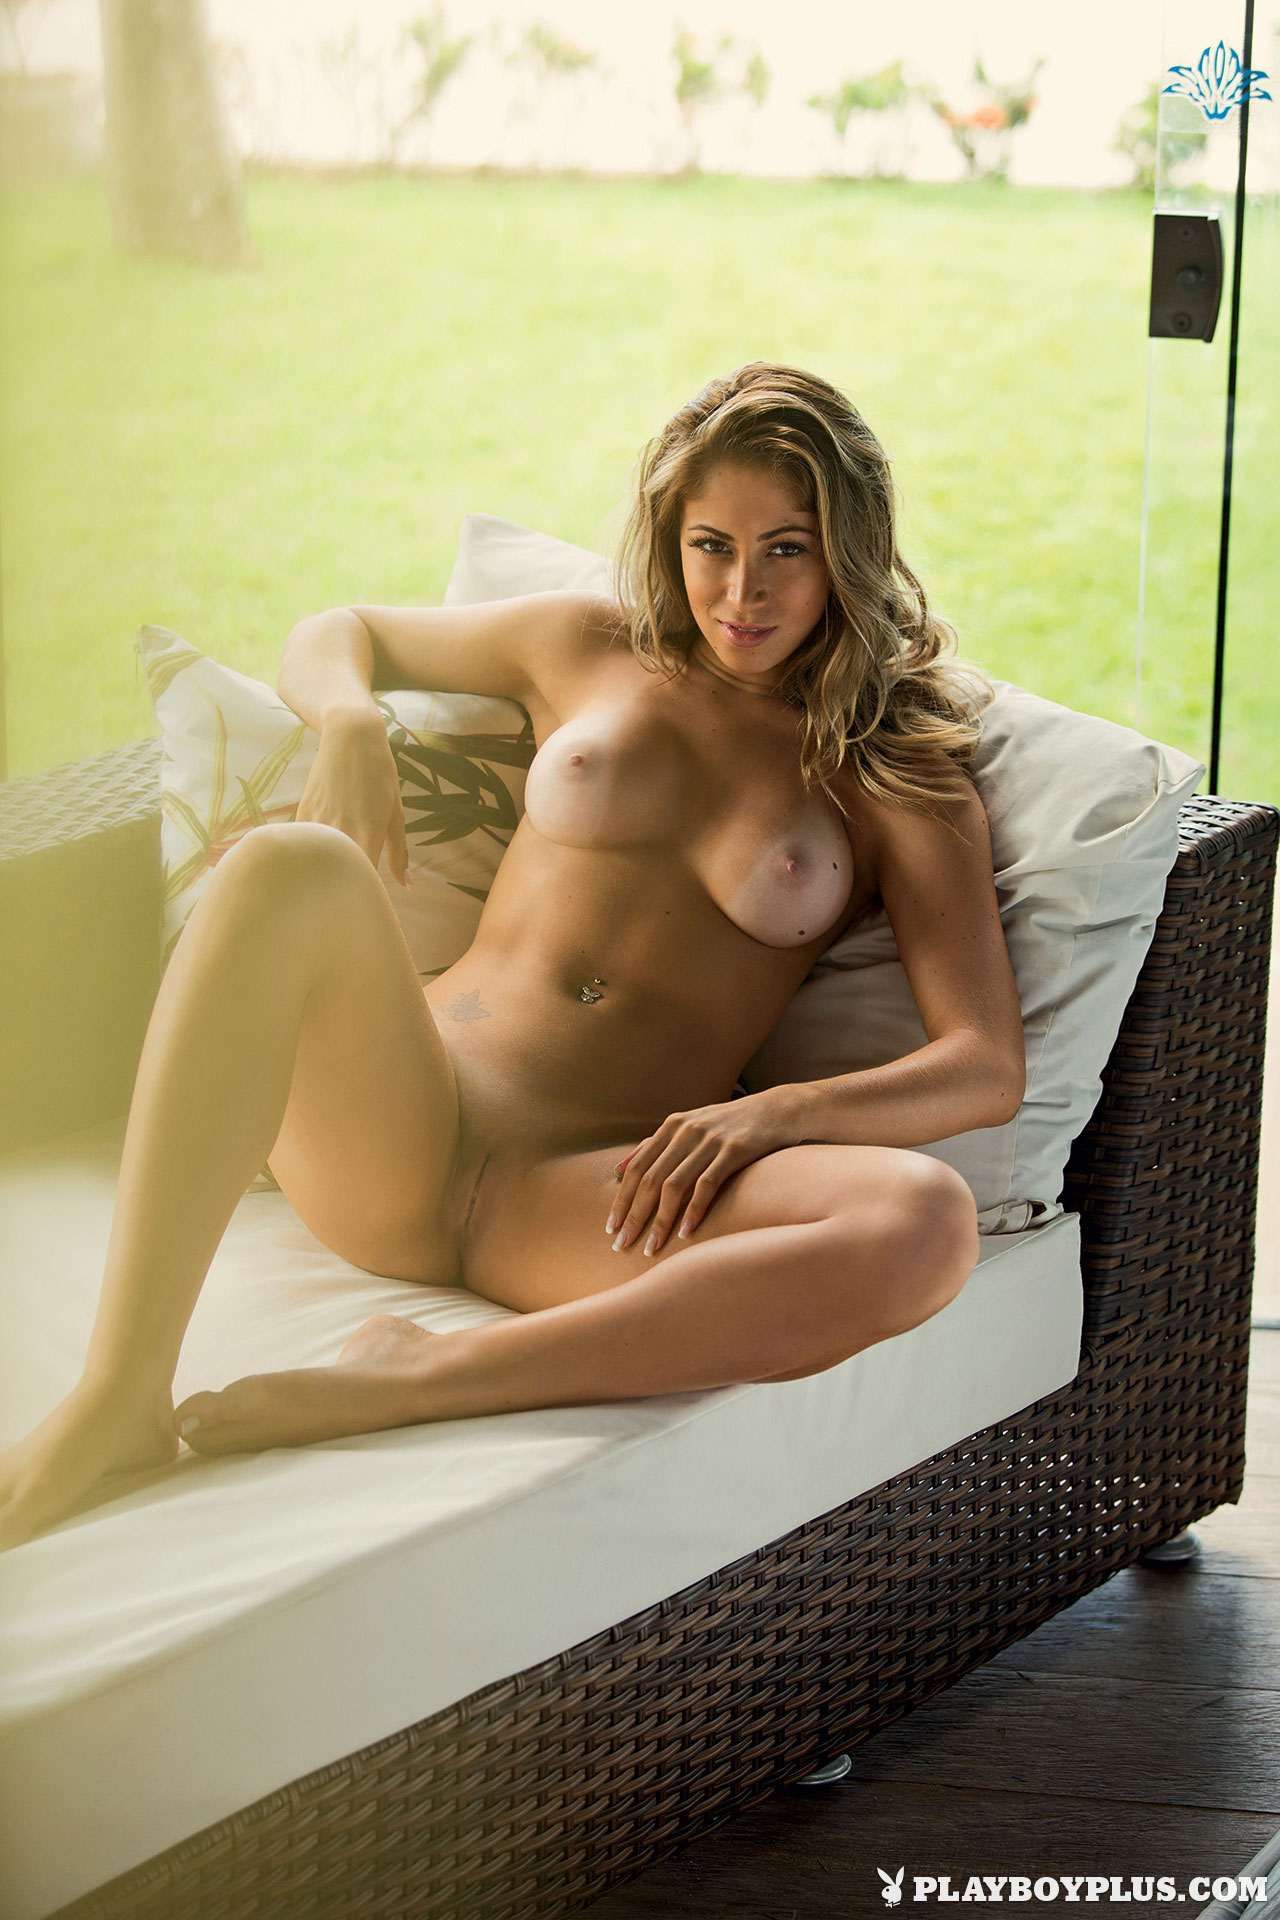 Variants brazilian playmates nude